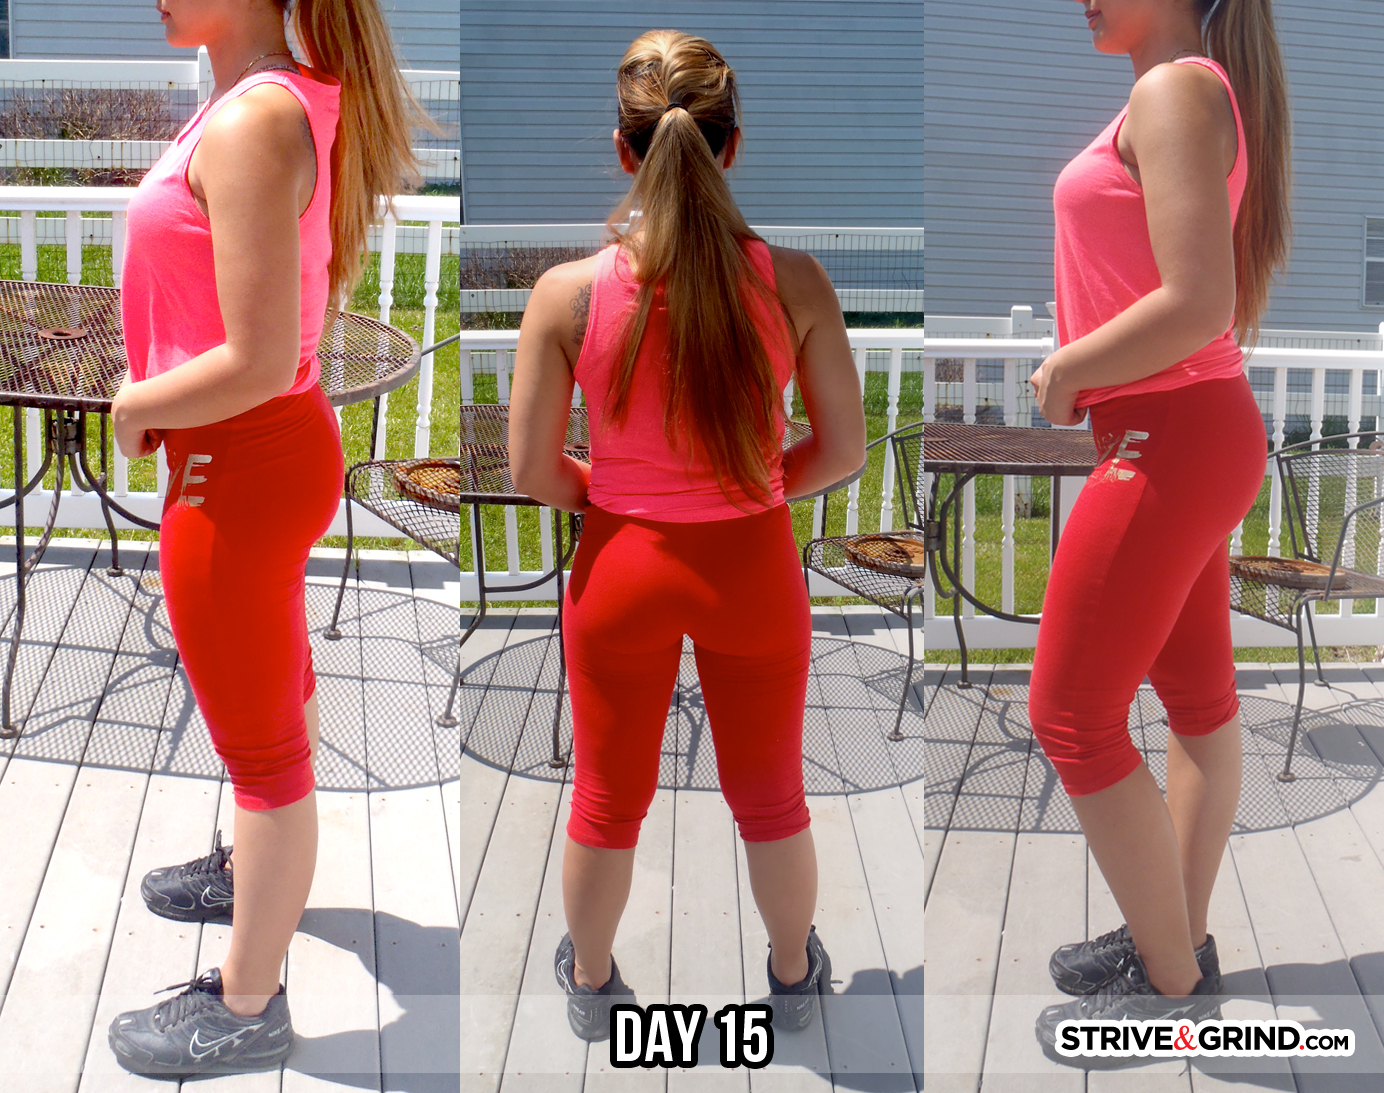 30 Day Squat Challenge Results http://strivengrind.com/30-day-squat-challenge/